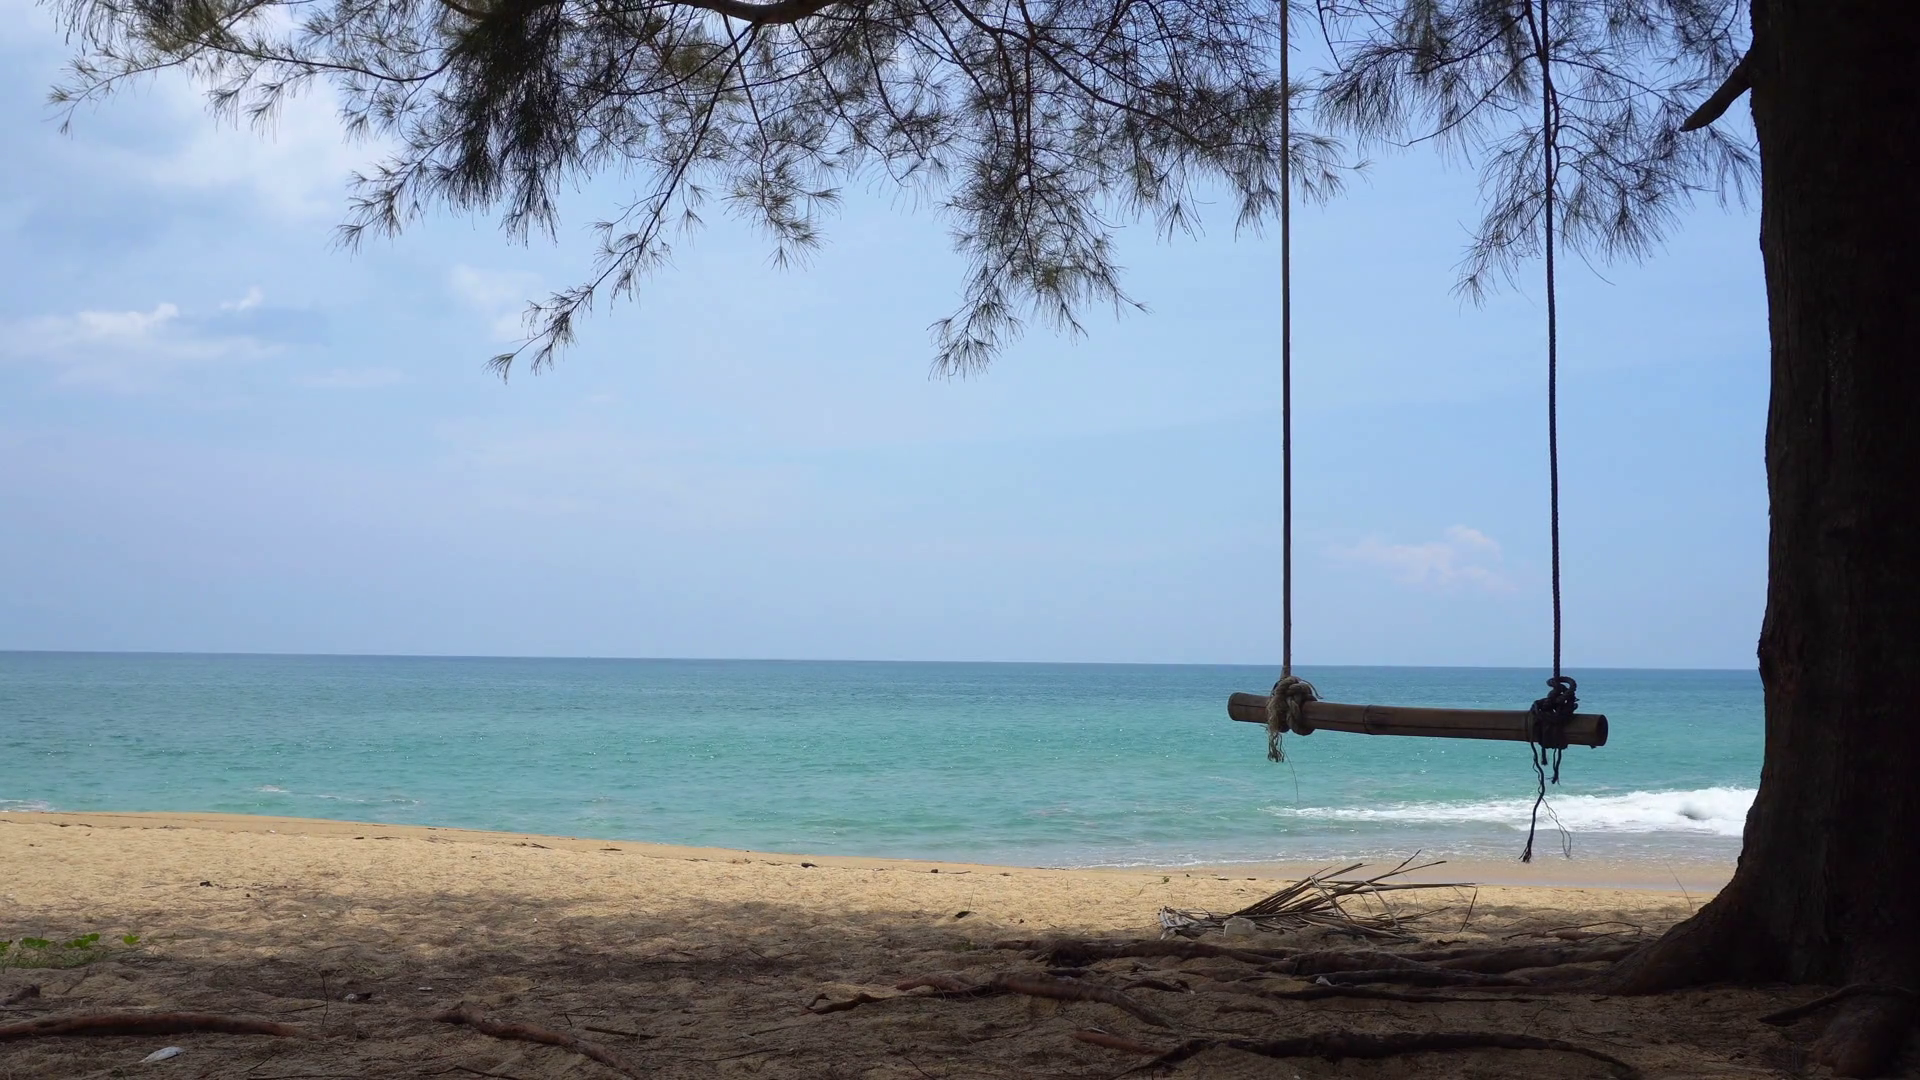 UltraHD 4K video - Small waves gently wash this peaceful. tropical ...